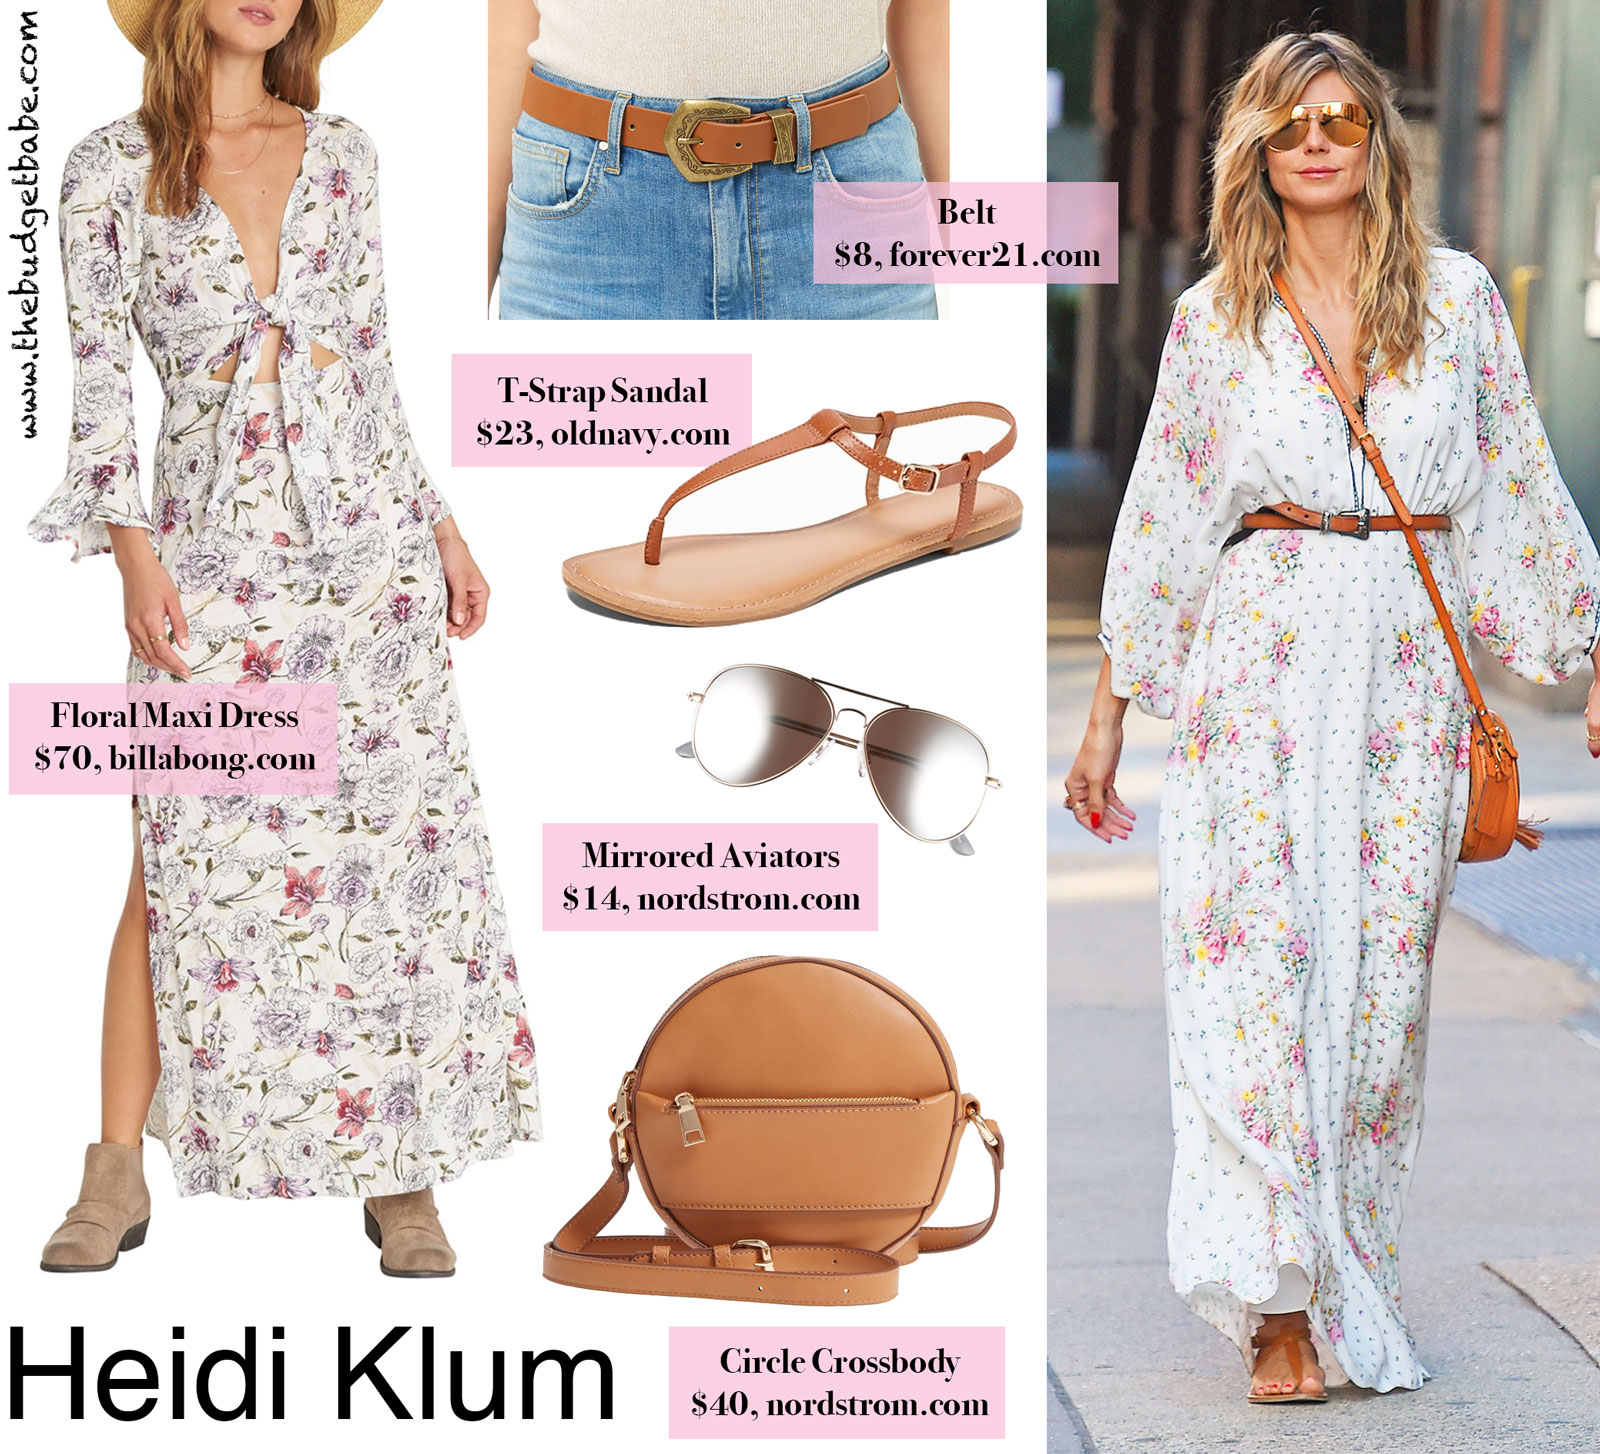 5c4c1e3bb30 Heidi Klum s White Floral Maxi Dress and T-Strap Sandals Look.